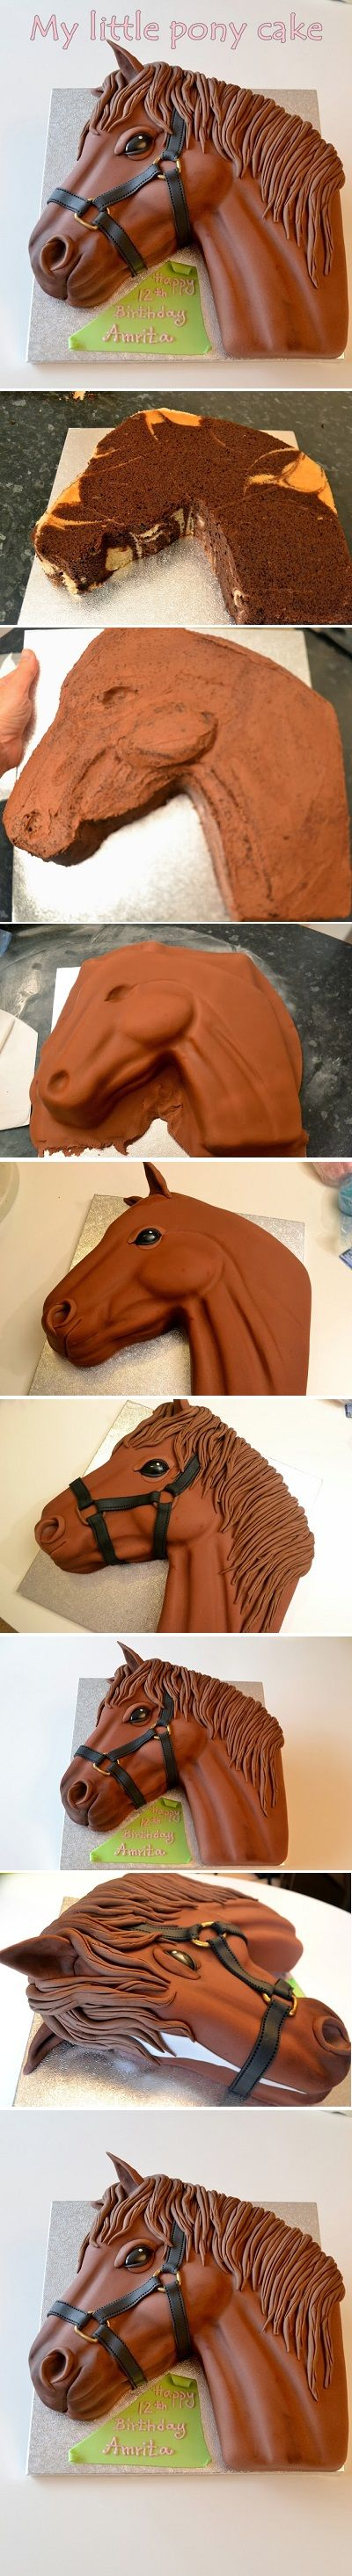 Horse cake-  I love this. I would make it white with lots of colors in the mane if I were doing this as a My Little Pony cake for a kid. :)